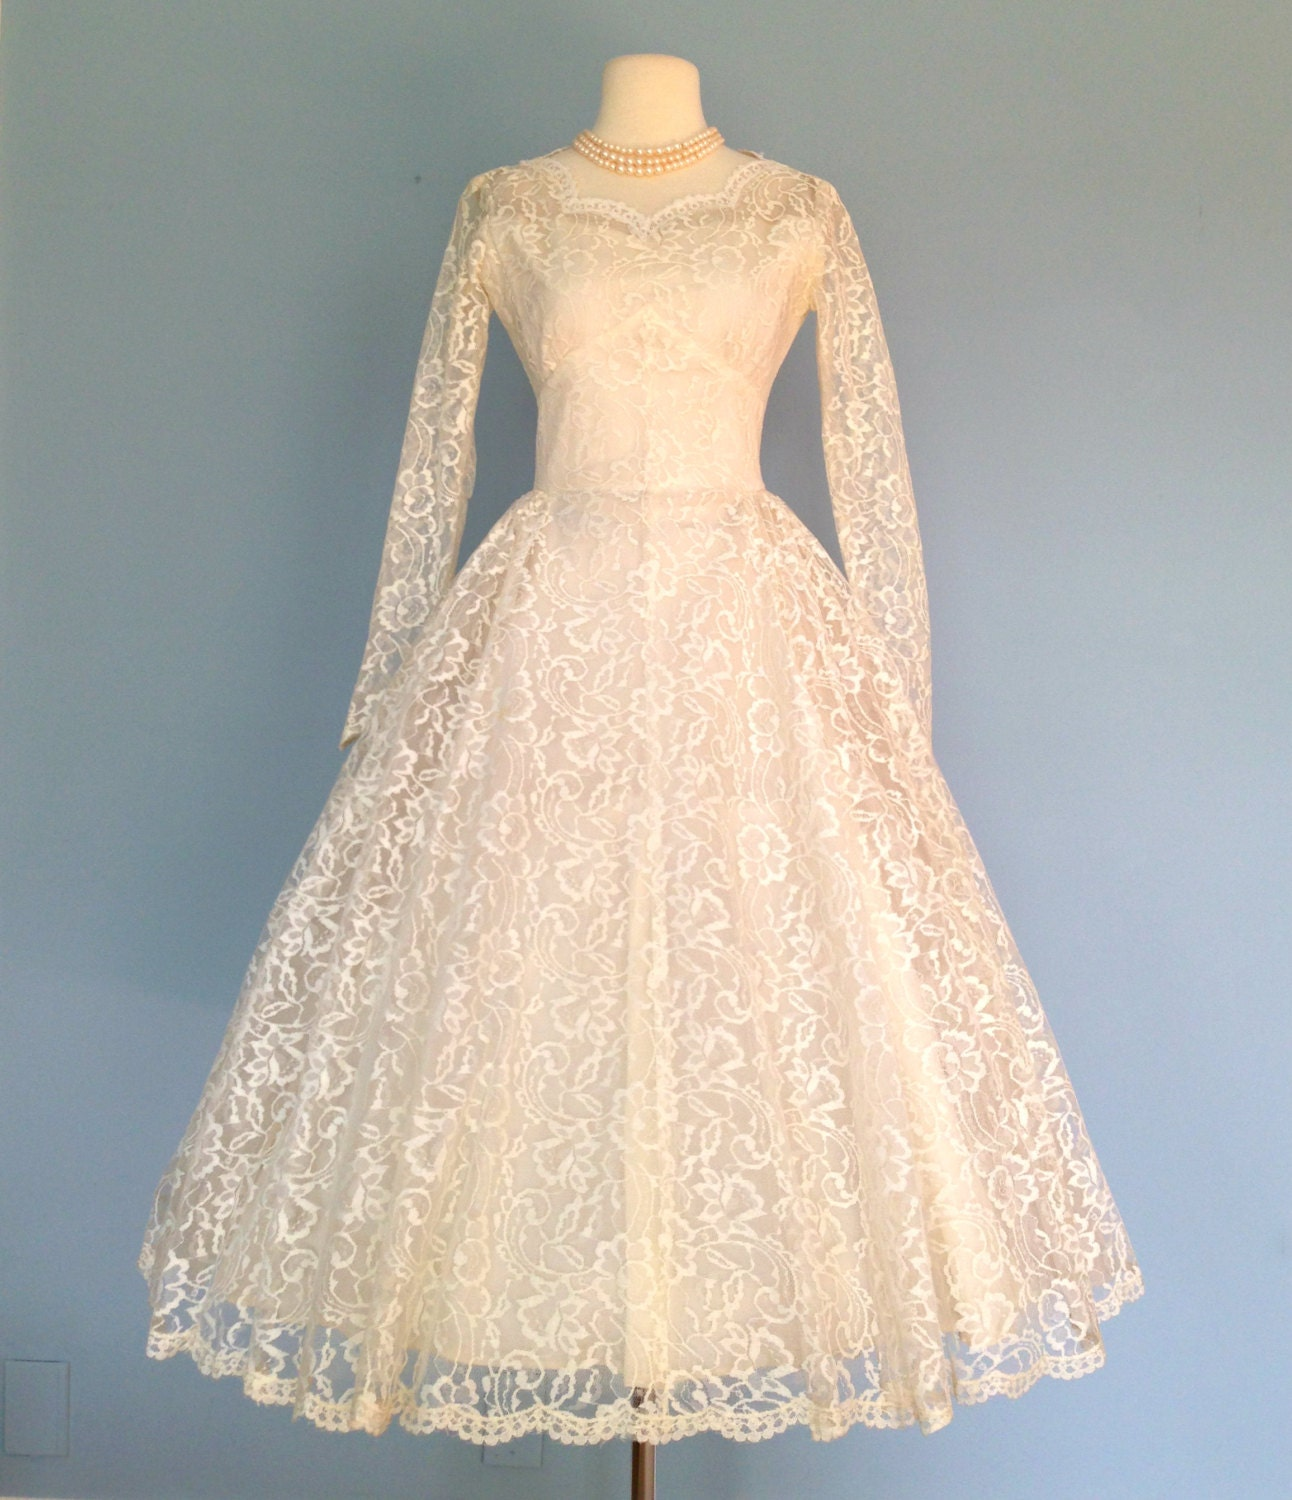 Vintage Lace Wedding DressBeautiful 1950s Tea Length Ivory